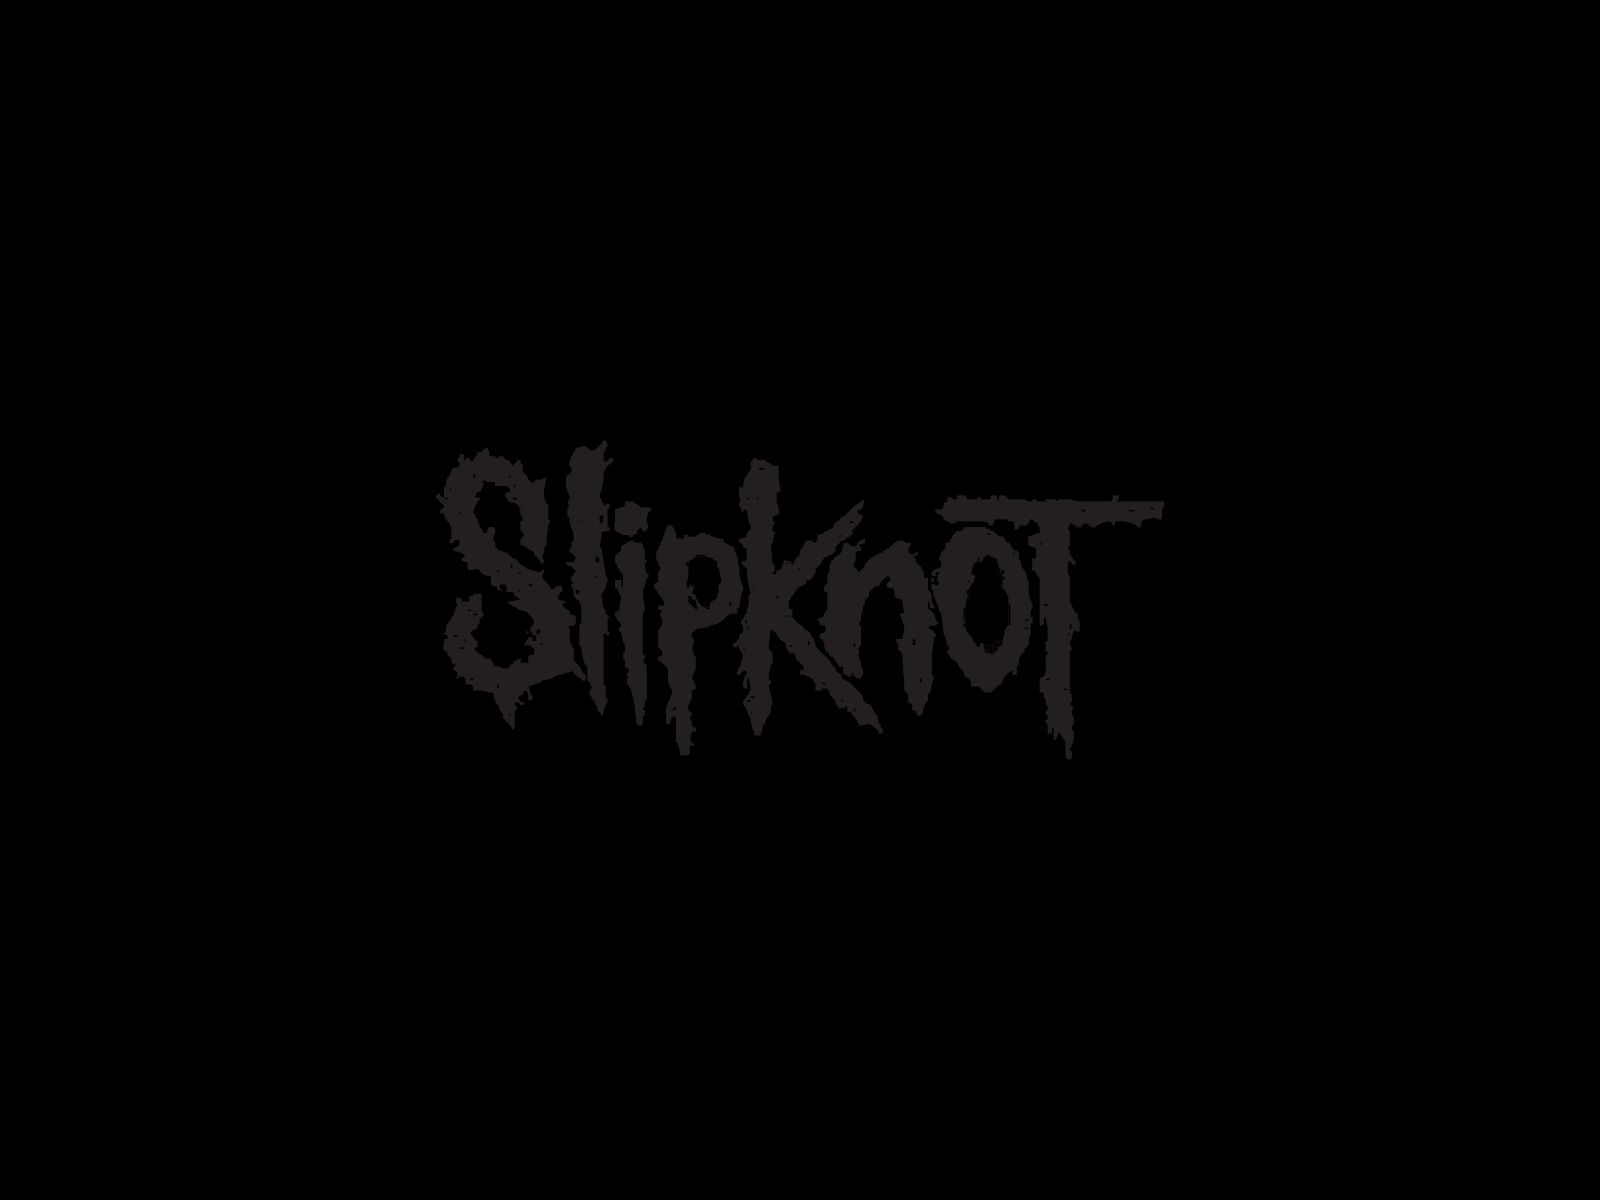 Slipknot Wallpapers HD black background